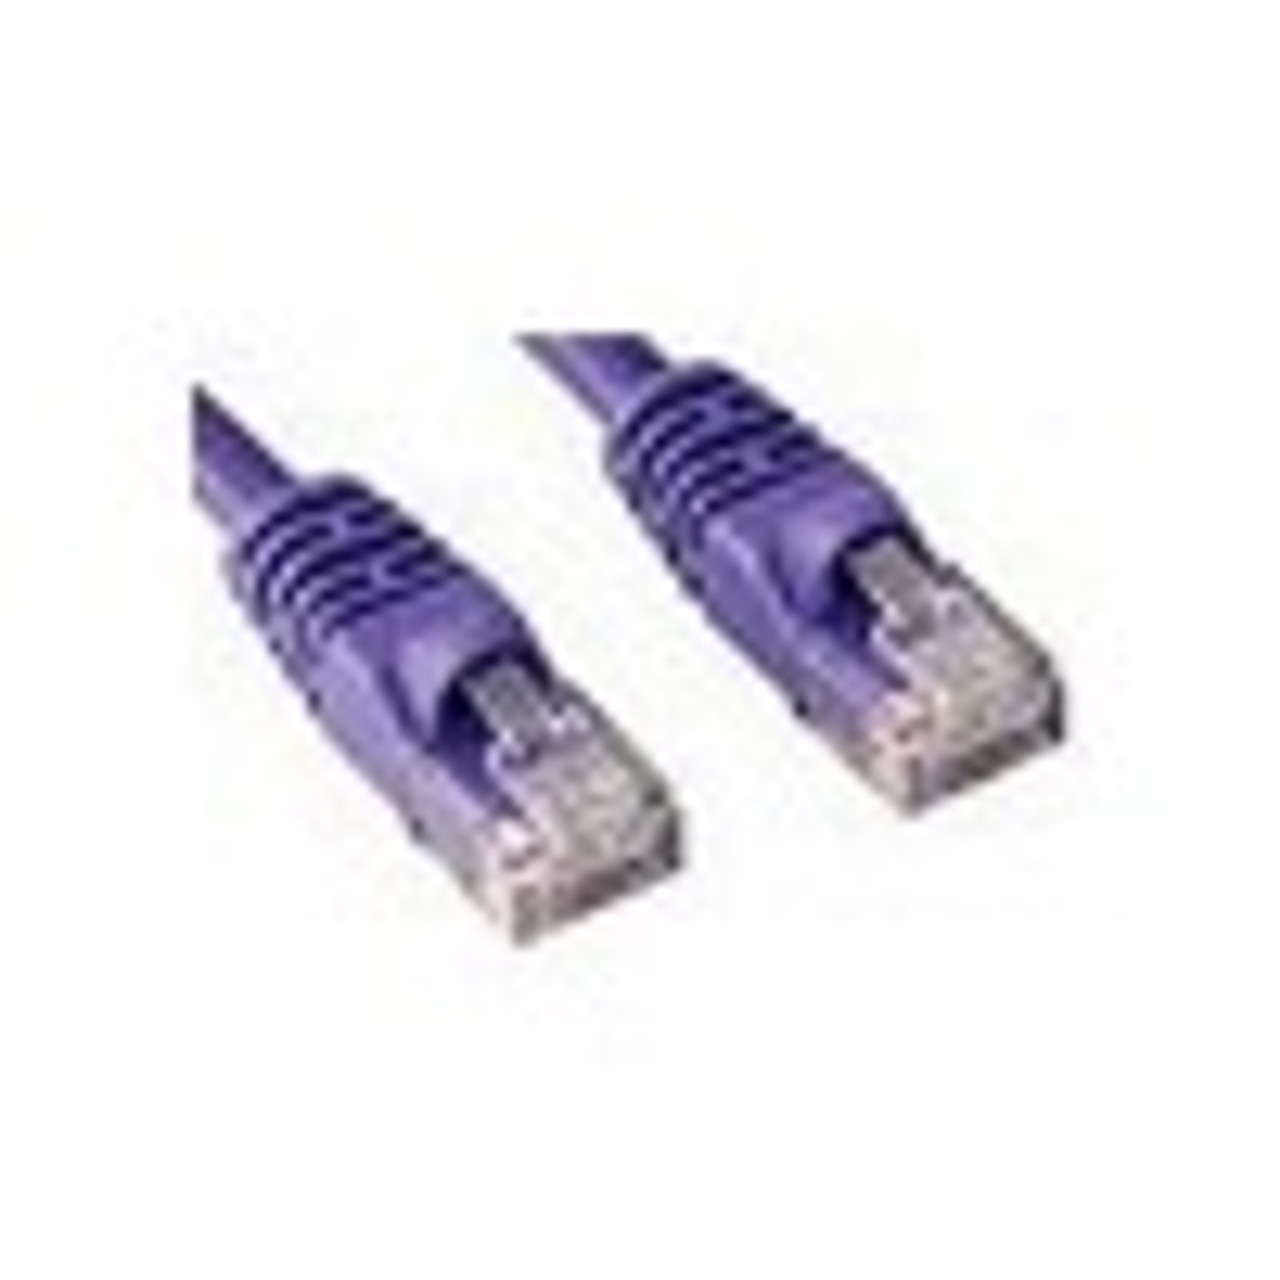 Product image for CAT5e PATCH CORD 0.5M PURPLE Network Cable 453448   CX Computer Superstore